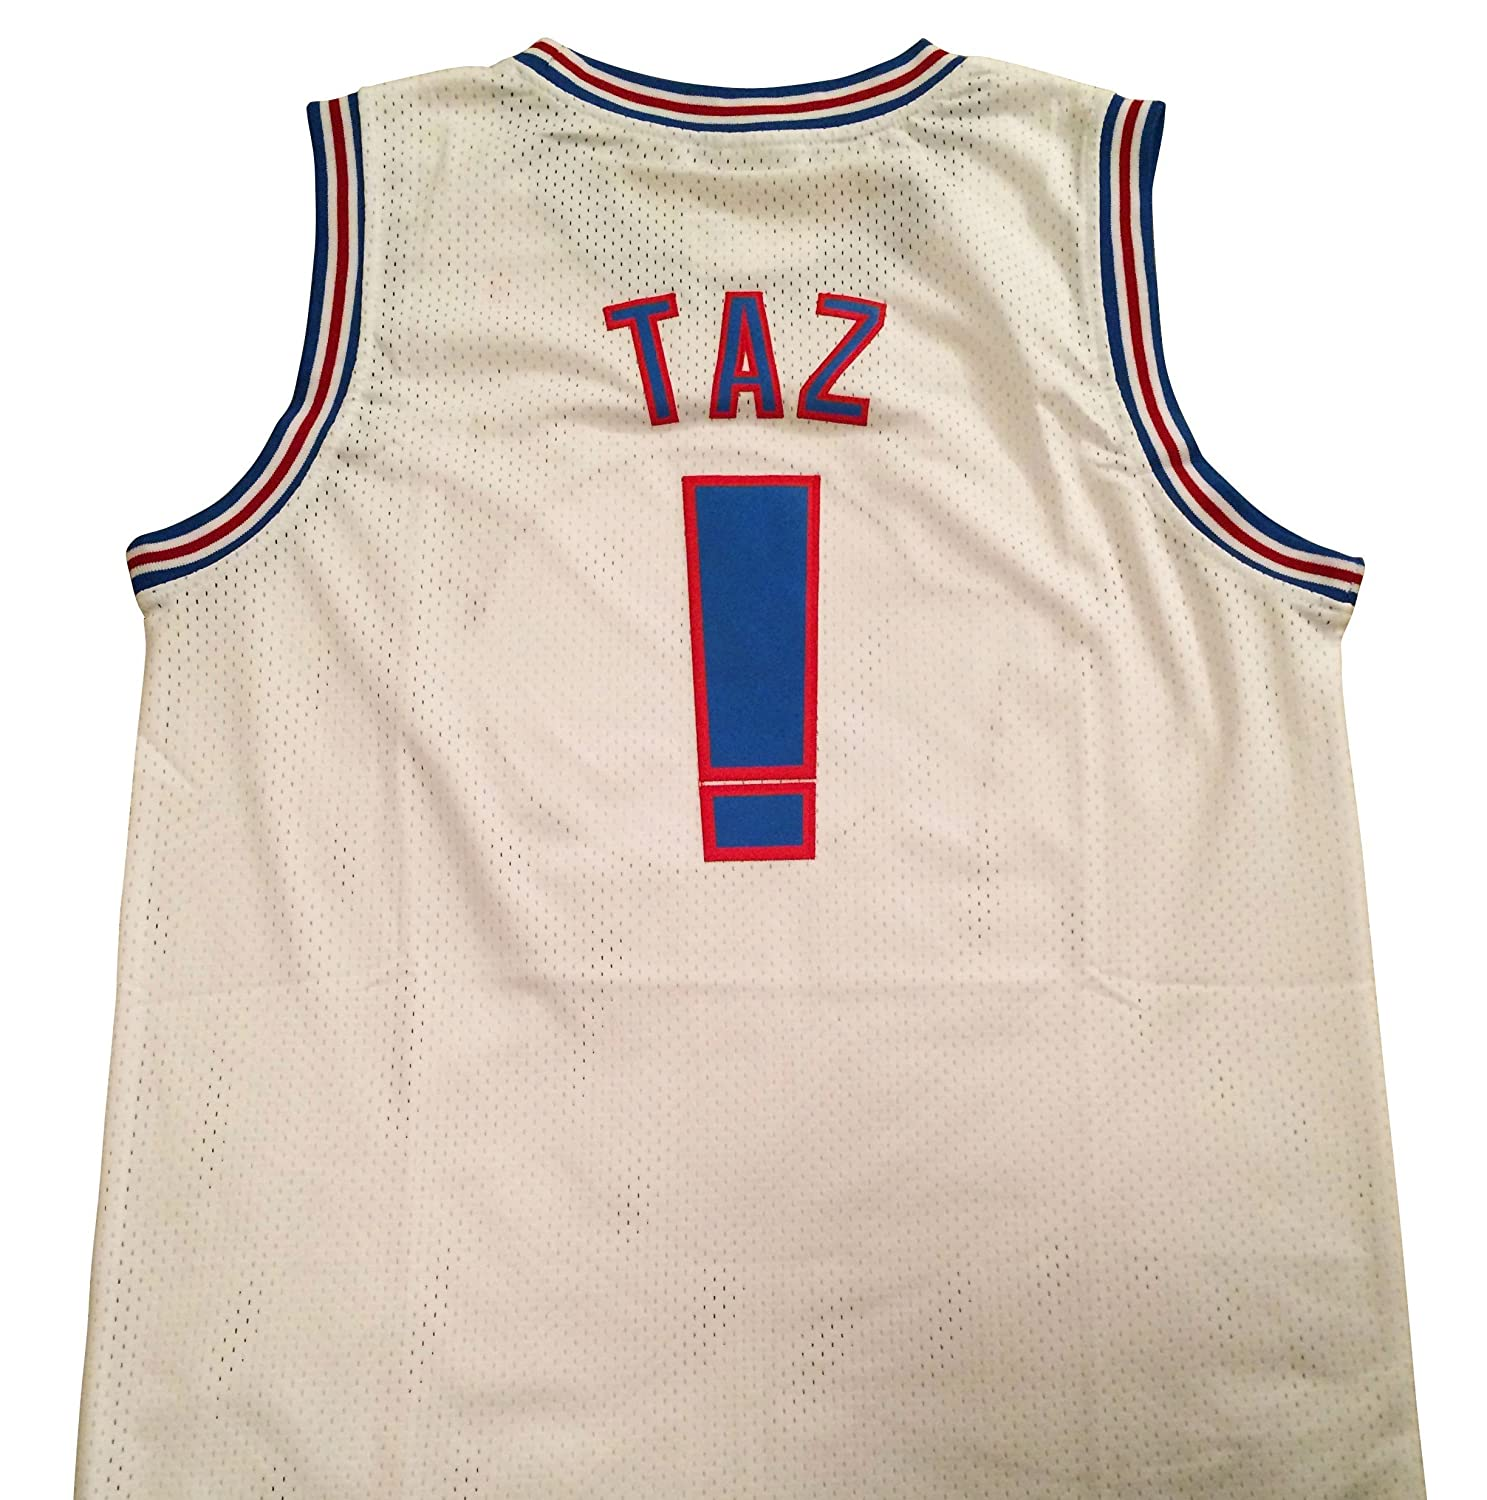 Taz Space Jam Jersey - ! Tune Squad - White (XX-Large) by space jam